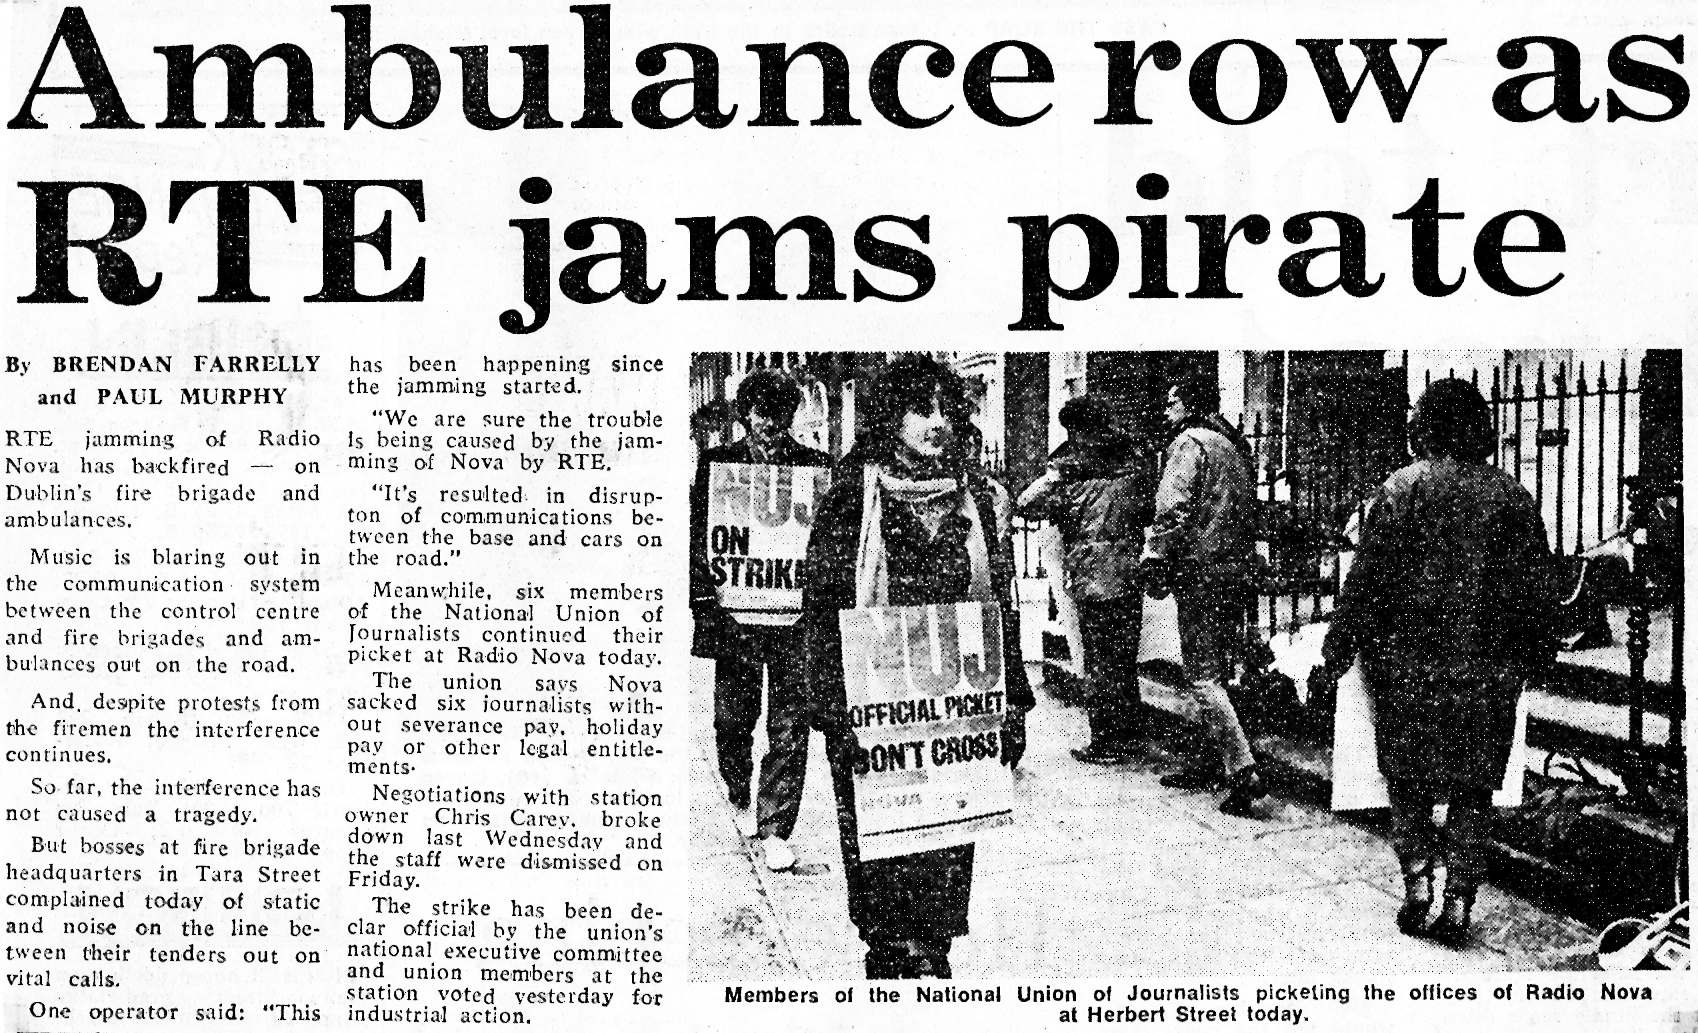 Ambulance row as RTÉ jams pirate was a newspaper headline from The Evening Herald dated February 7th 1984